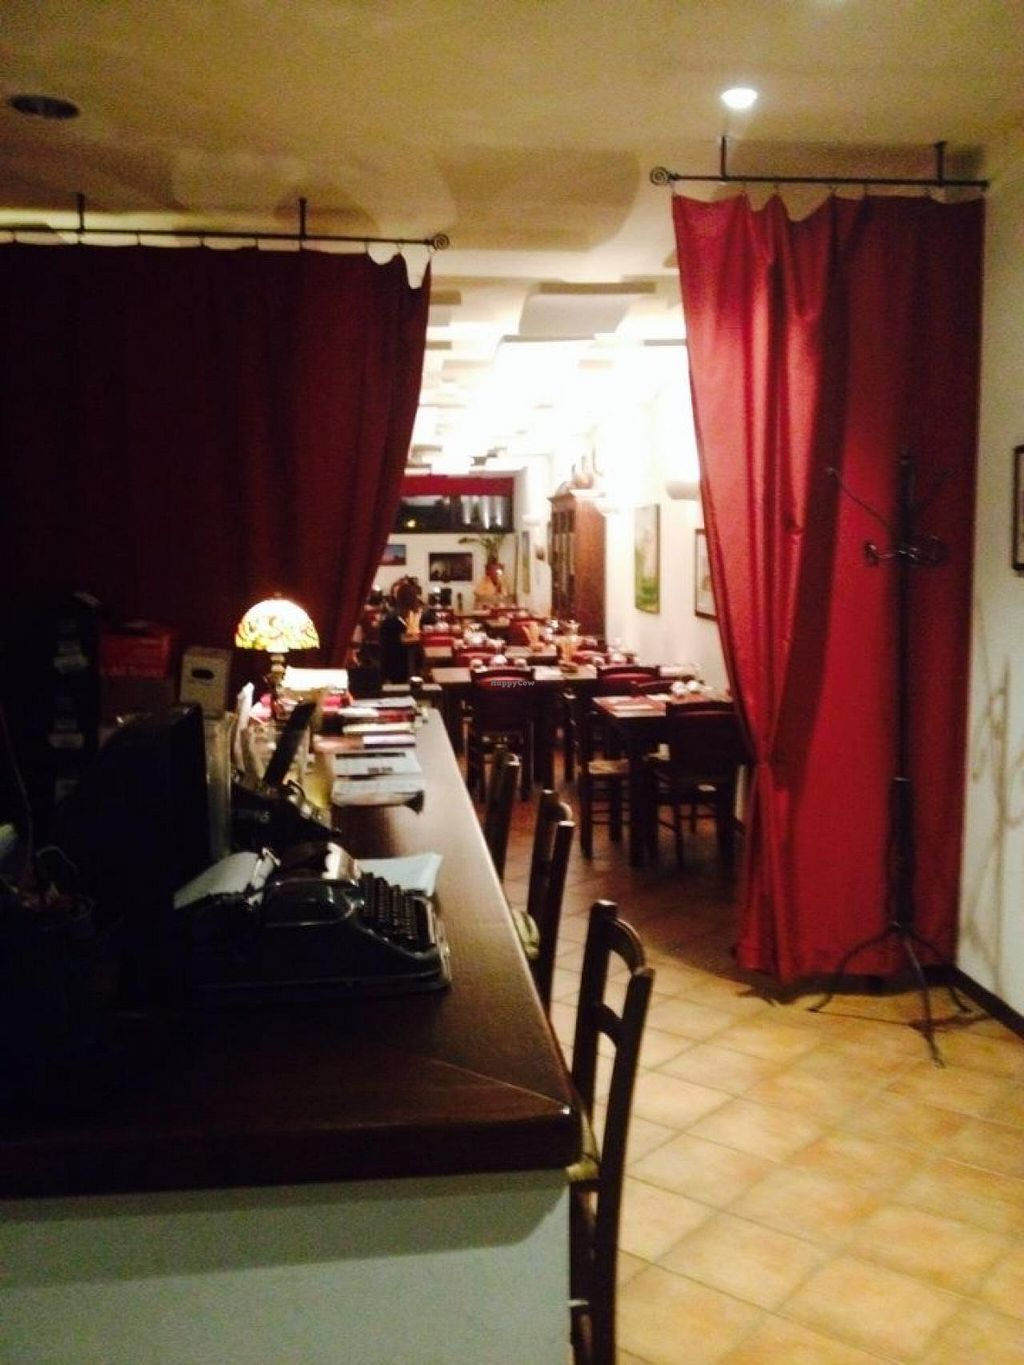 """Photo of Giovegans  by <a href=""""/members/profile/EnricoFedericoRossi"""">EnricoFedericoRossi</a> <br/>Osteria Ingresso <br/> December 12, 2014  - <a href='/contact/abuse/image/53697/87800'>Report</a>"""